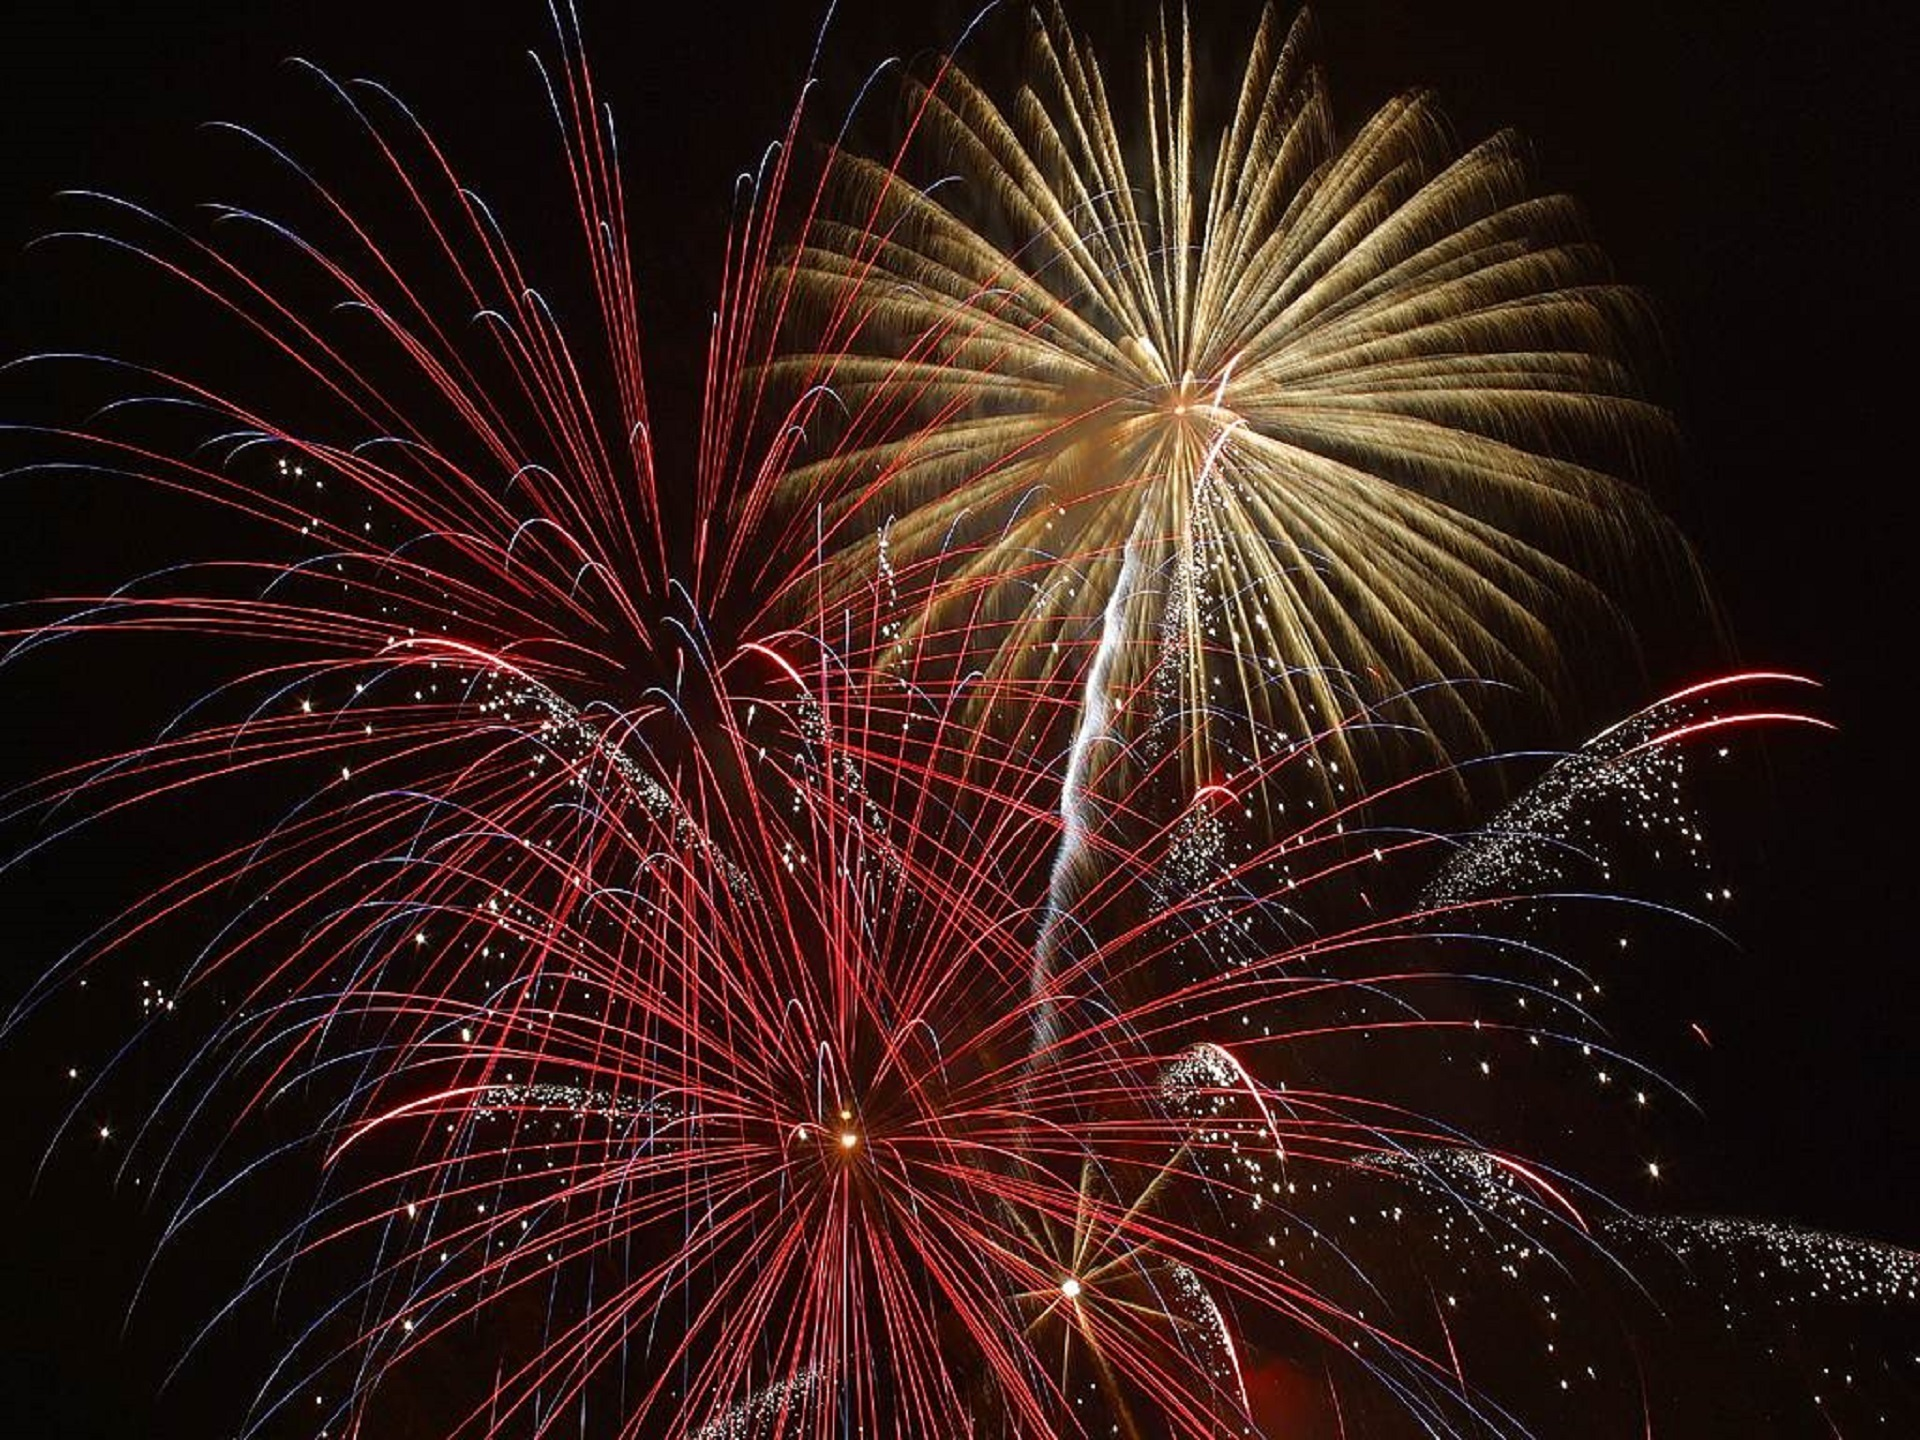 The fireworks display in Bridge of Allan will be held on Friday, November 4 this year